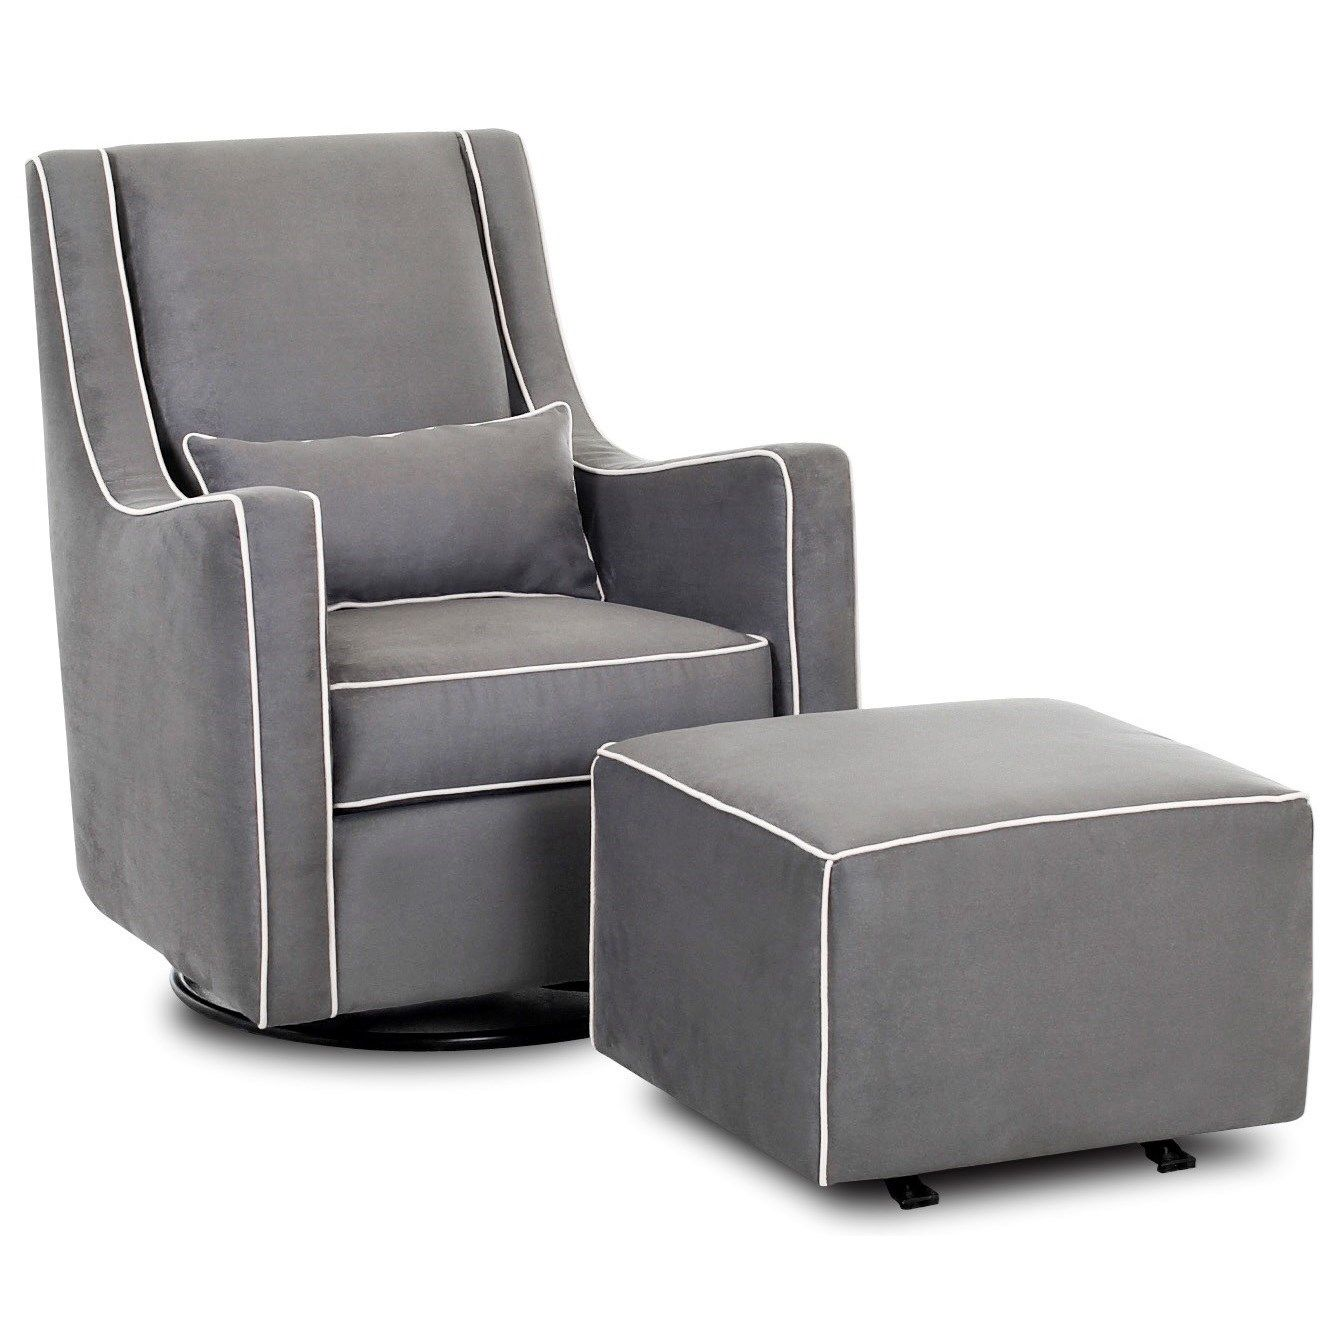 Chairs and Accents Lacey Swivel Gliding Chair and Ottoman